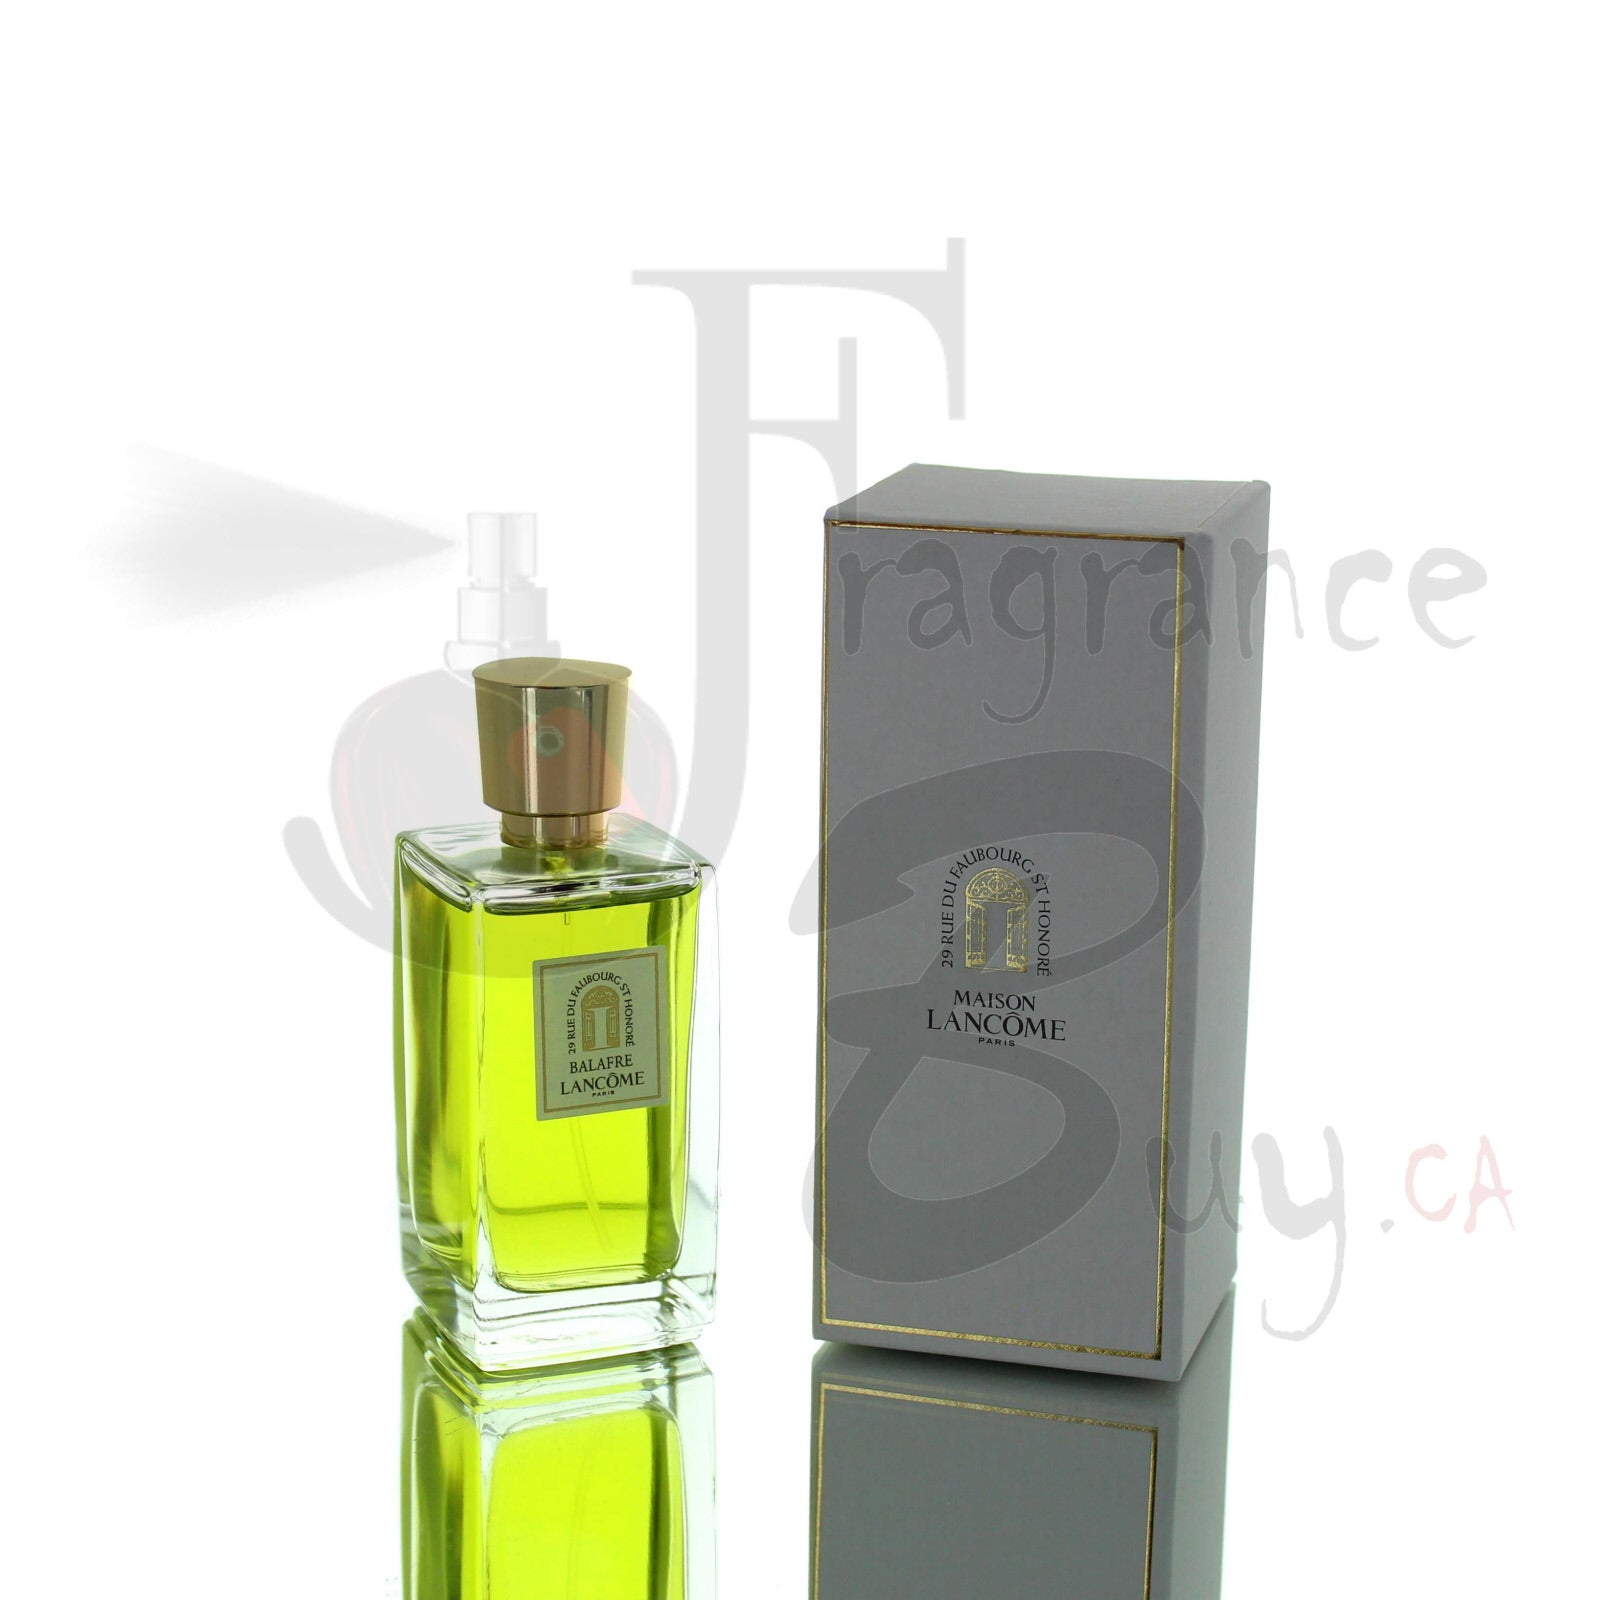 Lancome Balafre For Man/Woman